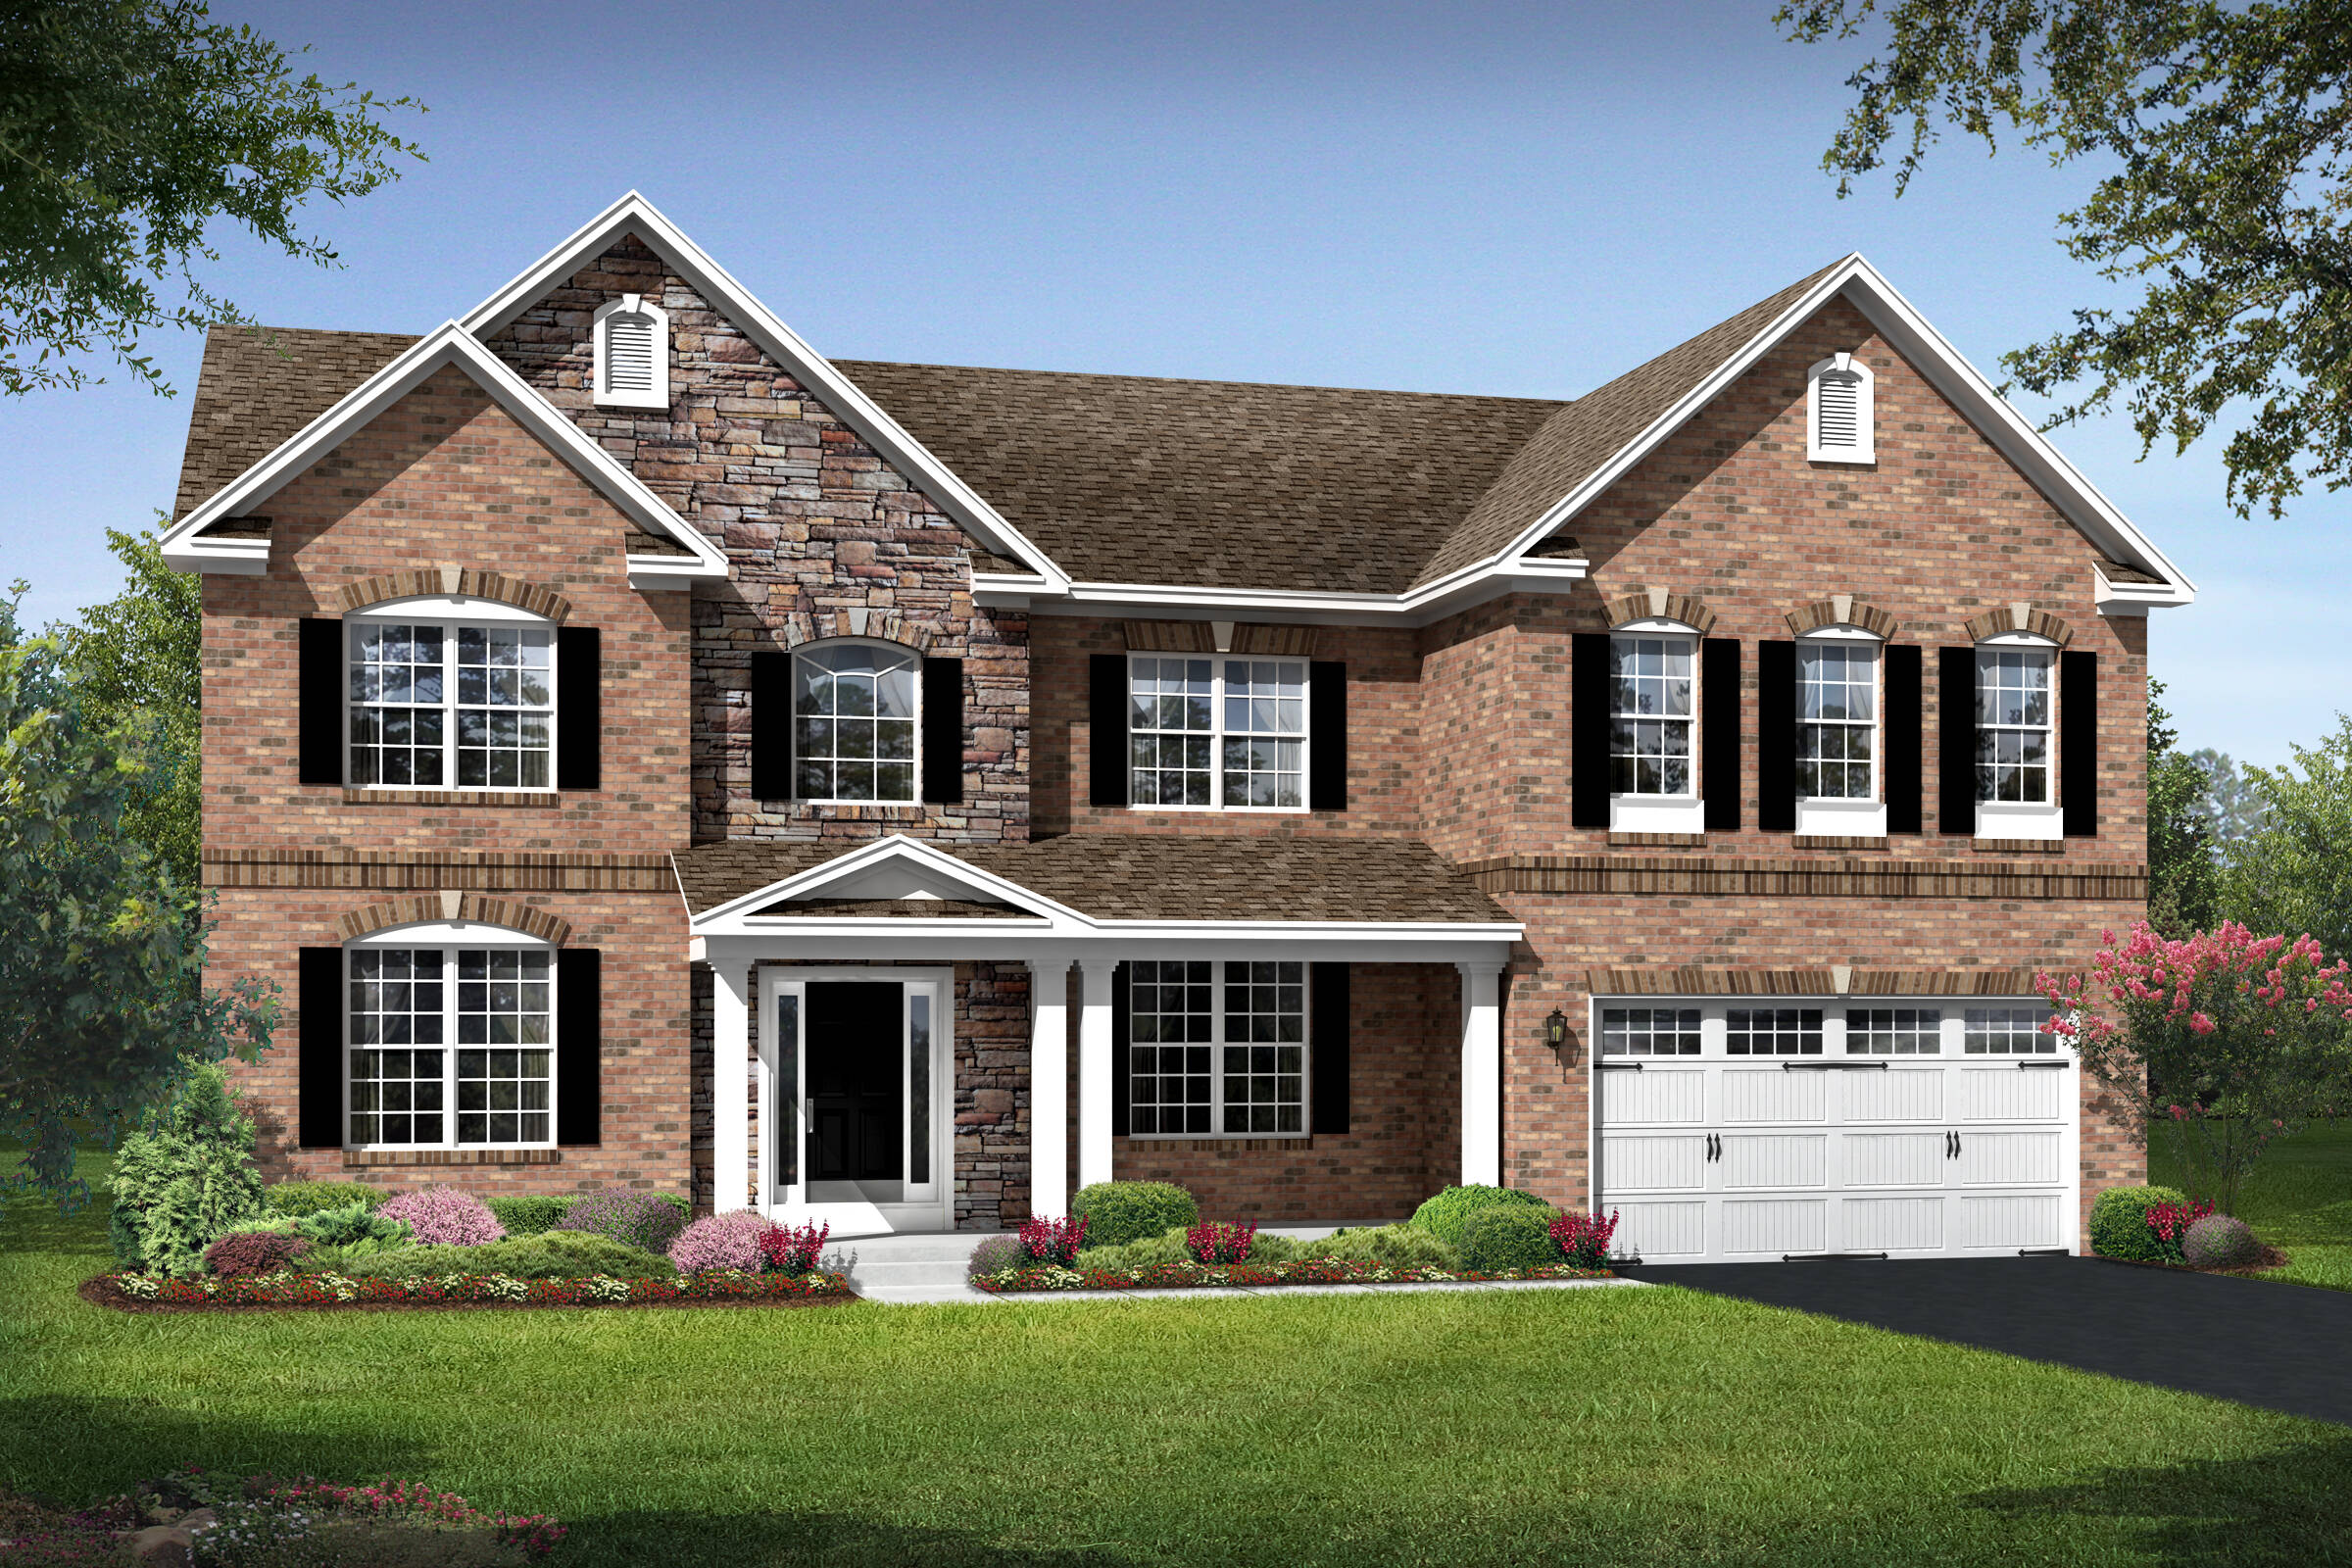 colorado a new homes at reserves at leeland station in virginia